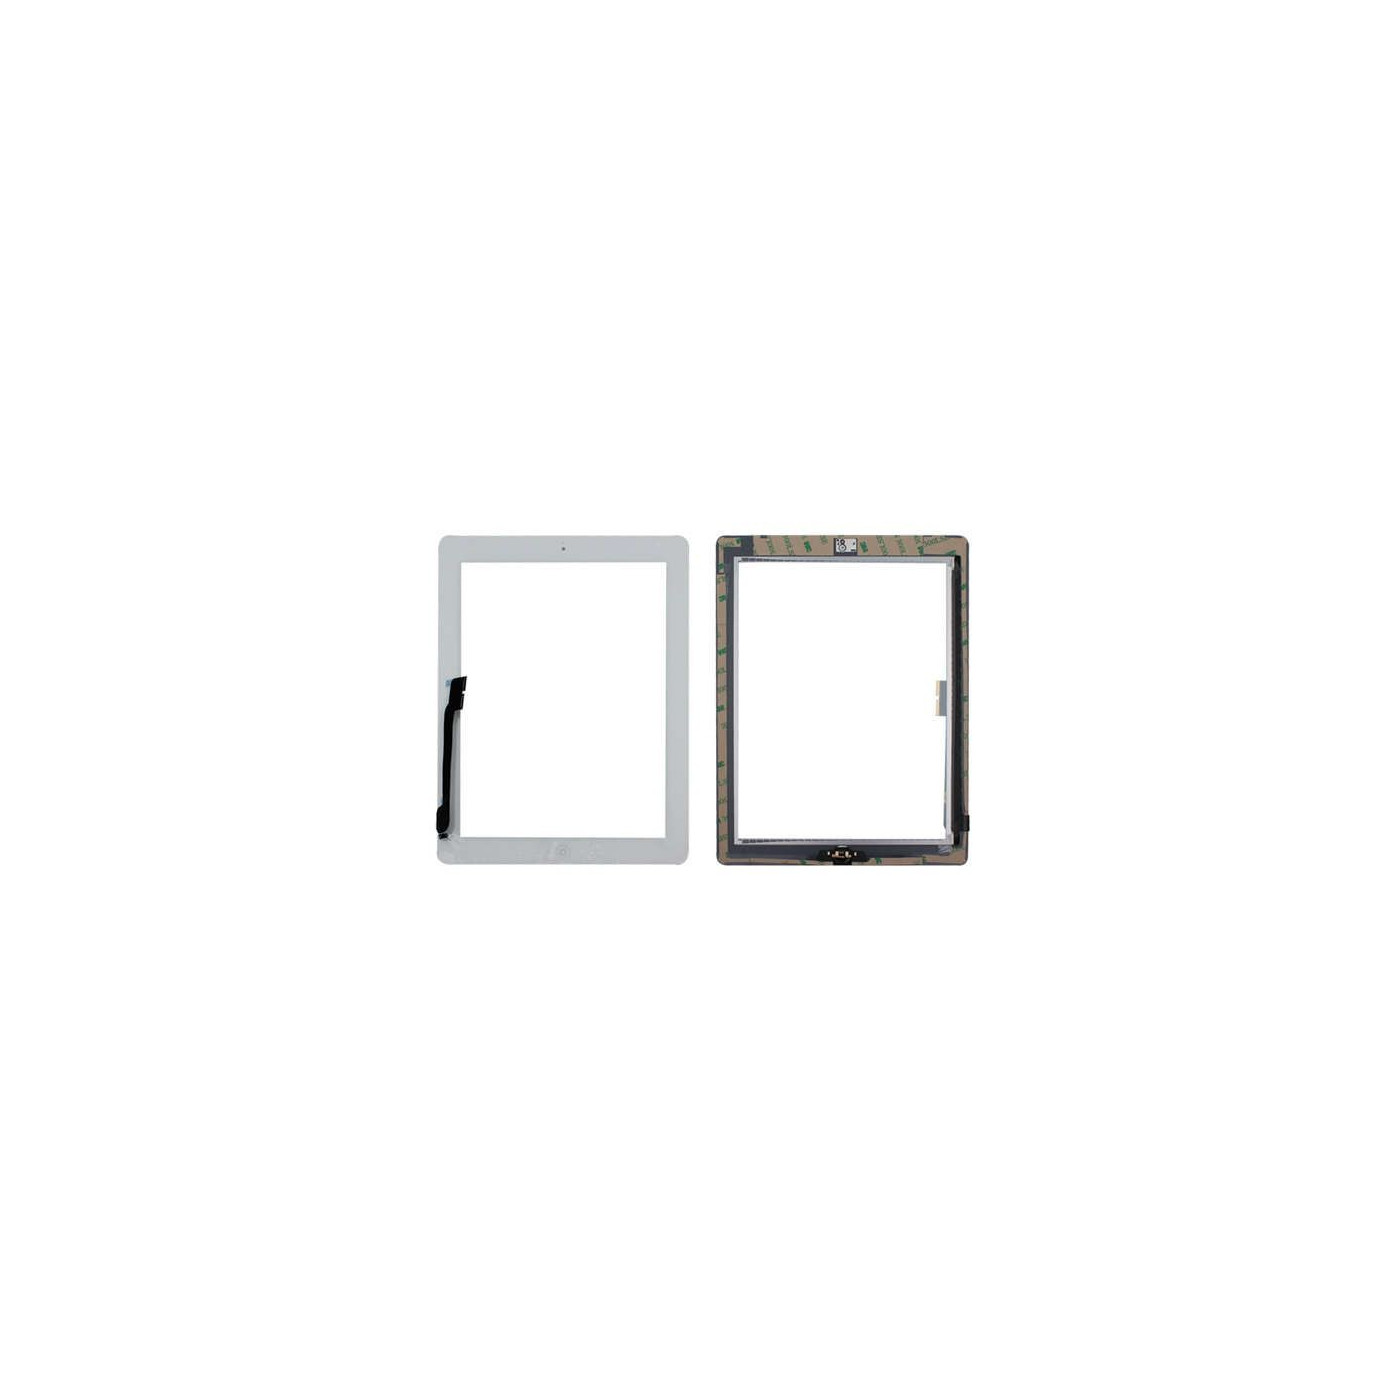 TOUCH SCREEN per Apple iPad 3 Bianco A1430 A1416 A1403 WiFi 3G VETRO Tasto Home